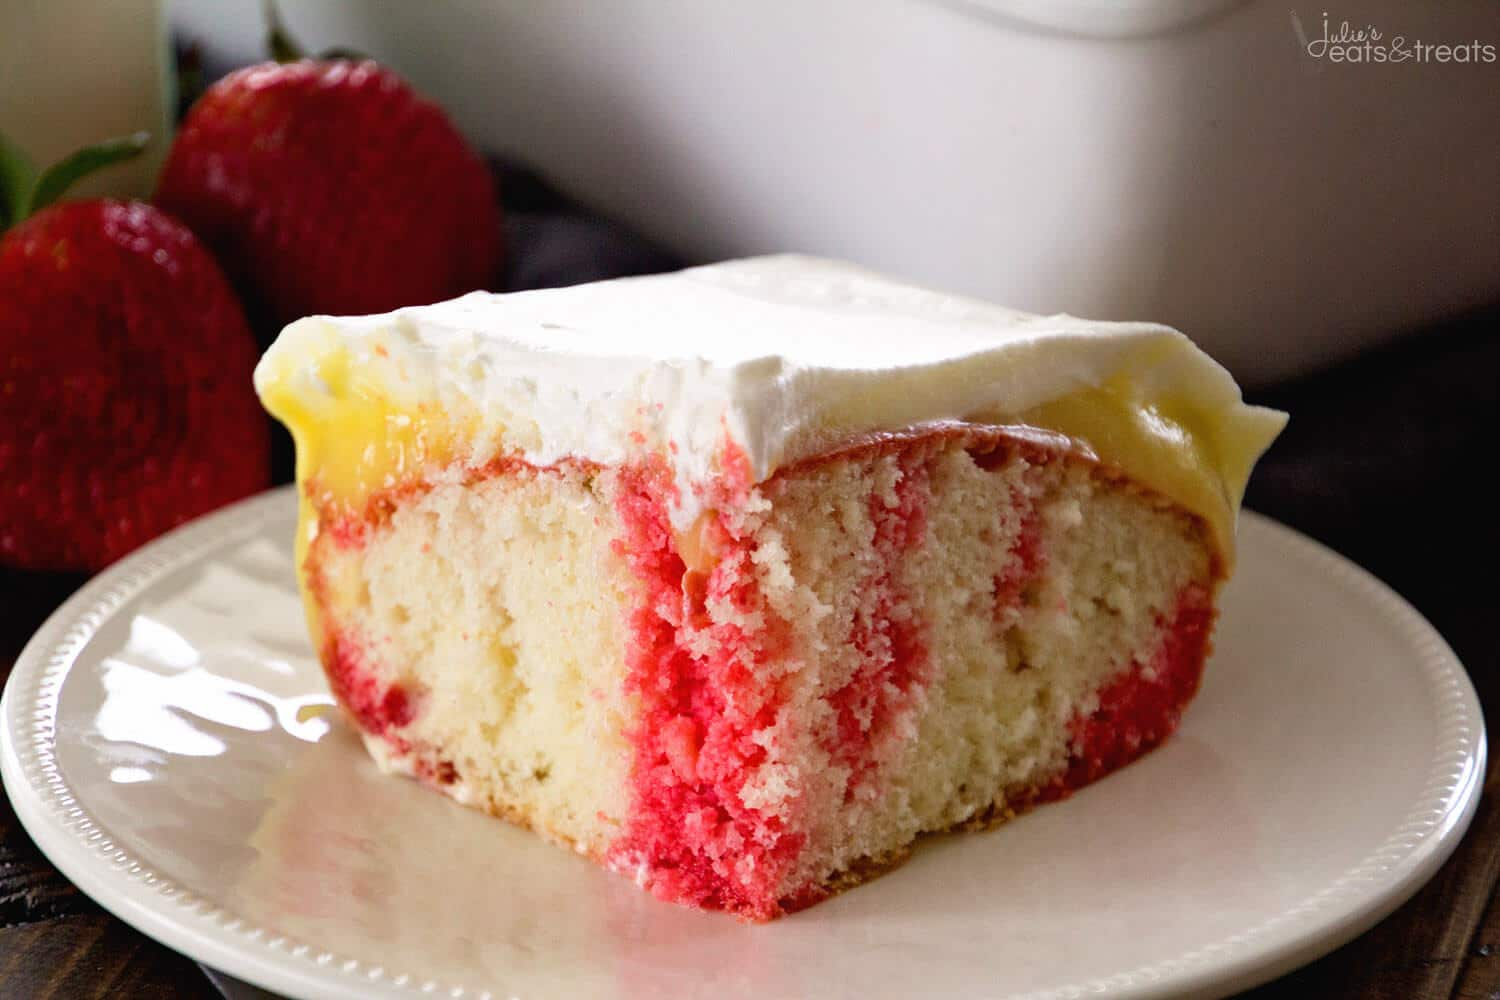 Strawberry Jello Poke Cake ~ Quick & Easy, But Impressive for Guests! This Light Cake Starts with a Box Mix and is Topped with Strawberry Jell-O, Vanilla Pudding and Cool Whip! Perfect Comfort Food Dessert!